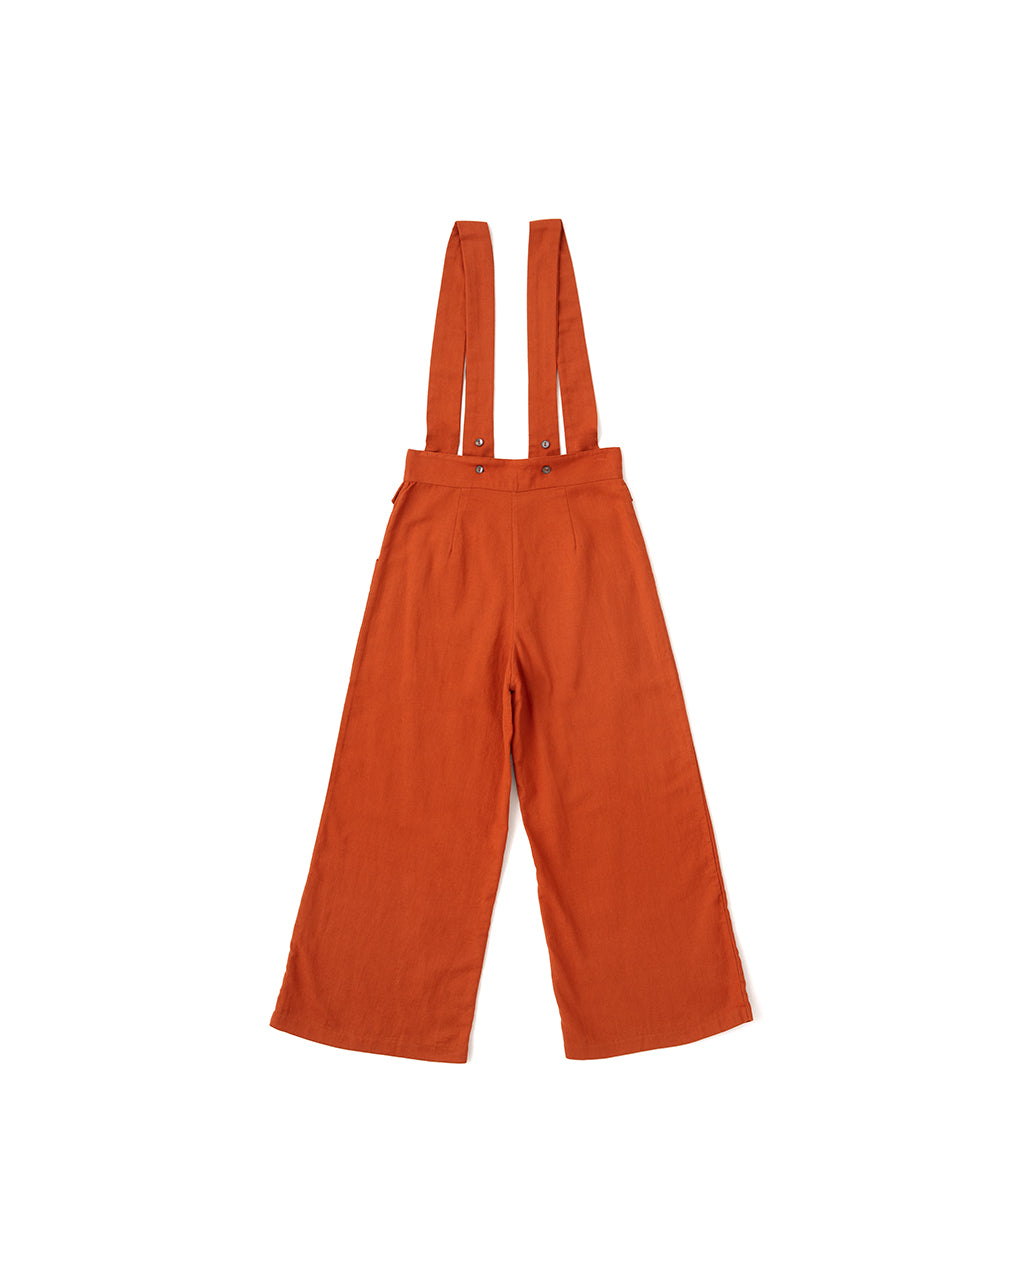 back view of overalls with adjustable straps